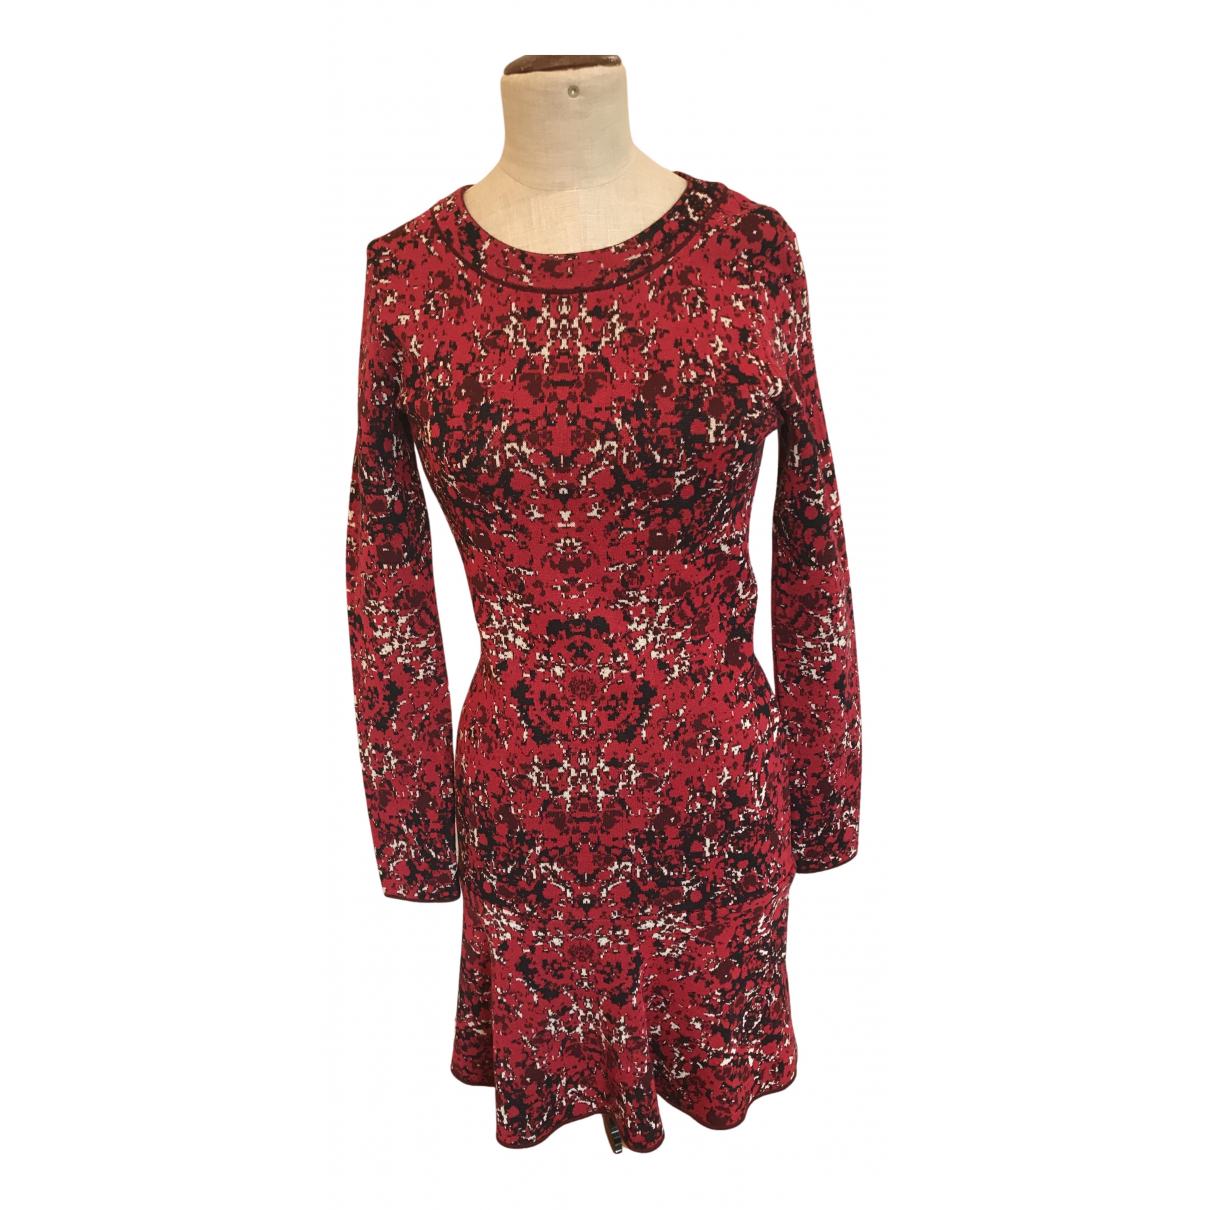 M Missoni N Red Cotton dress for Women 40 IT